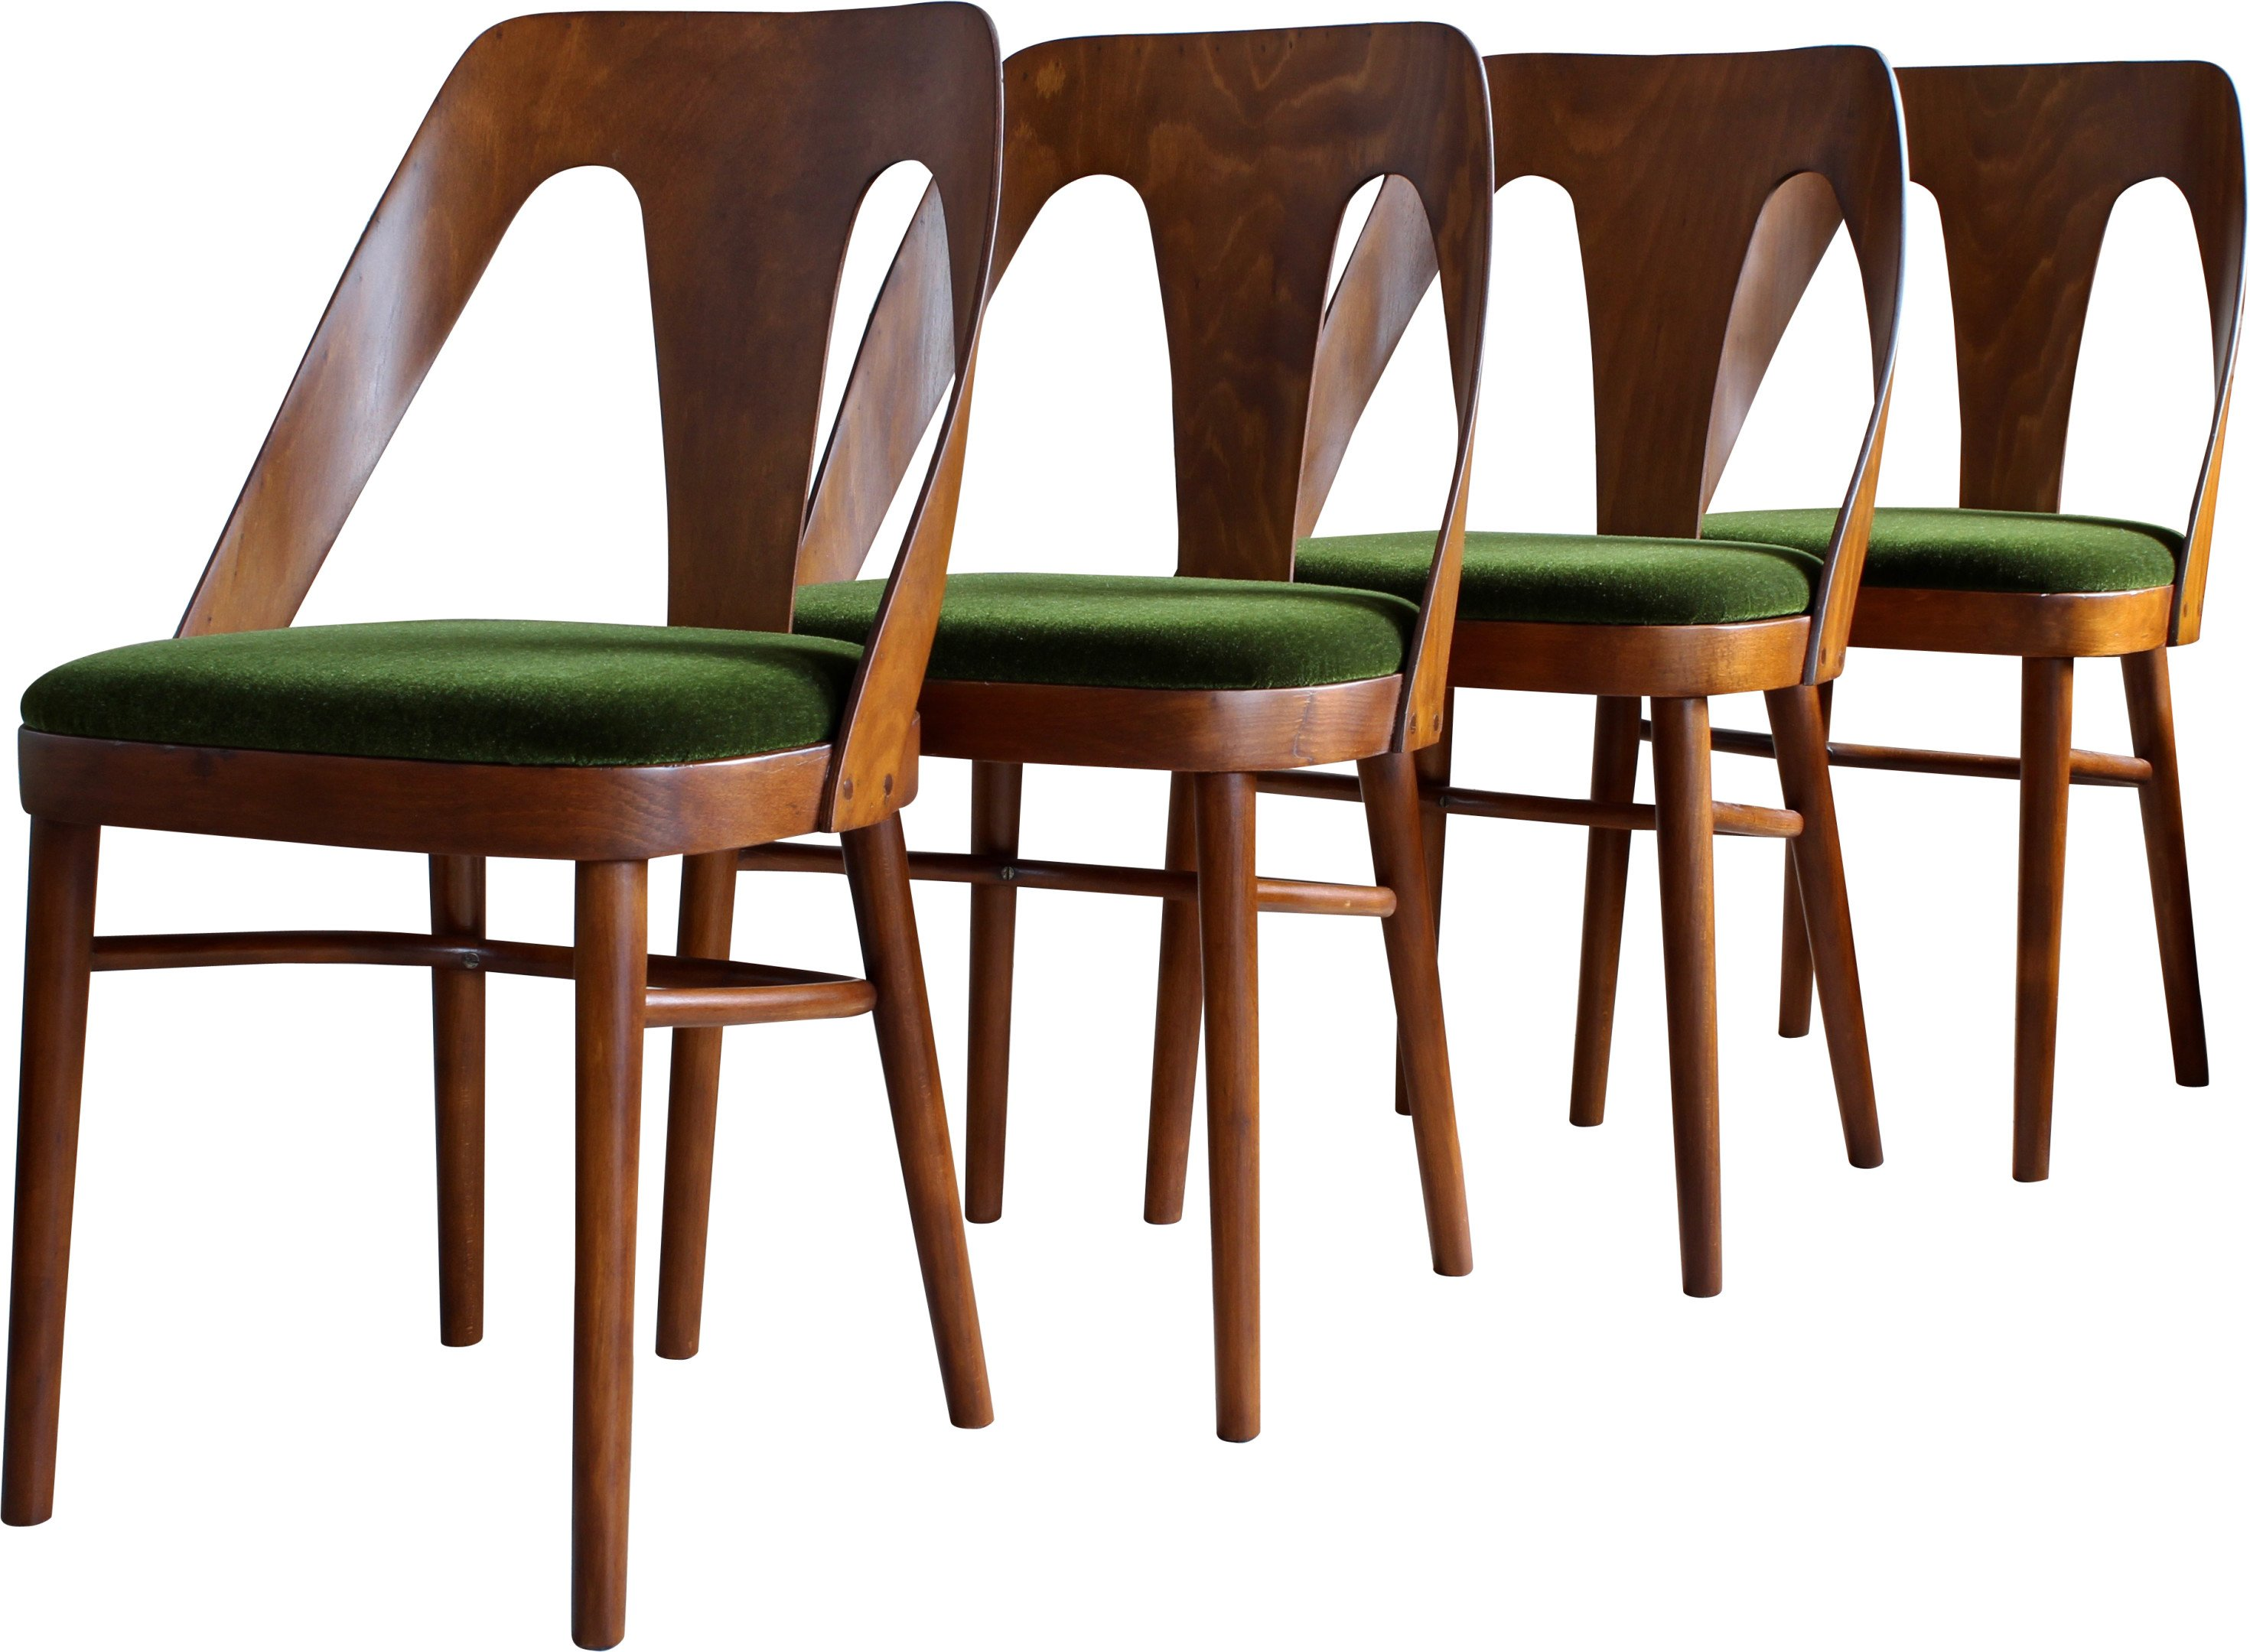 Set of Four A 6070 Chairs, Fameg, Poland, 1960s